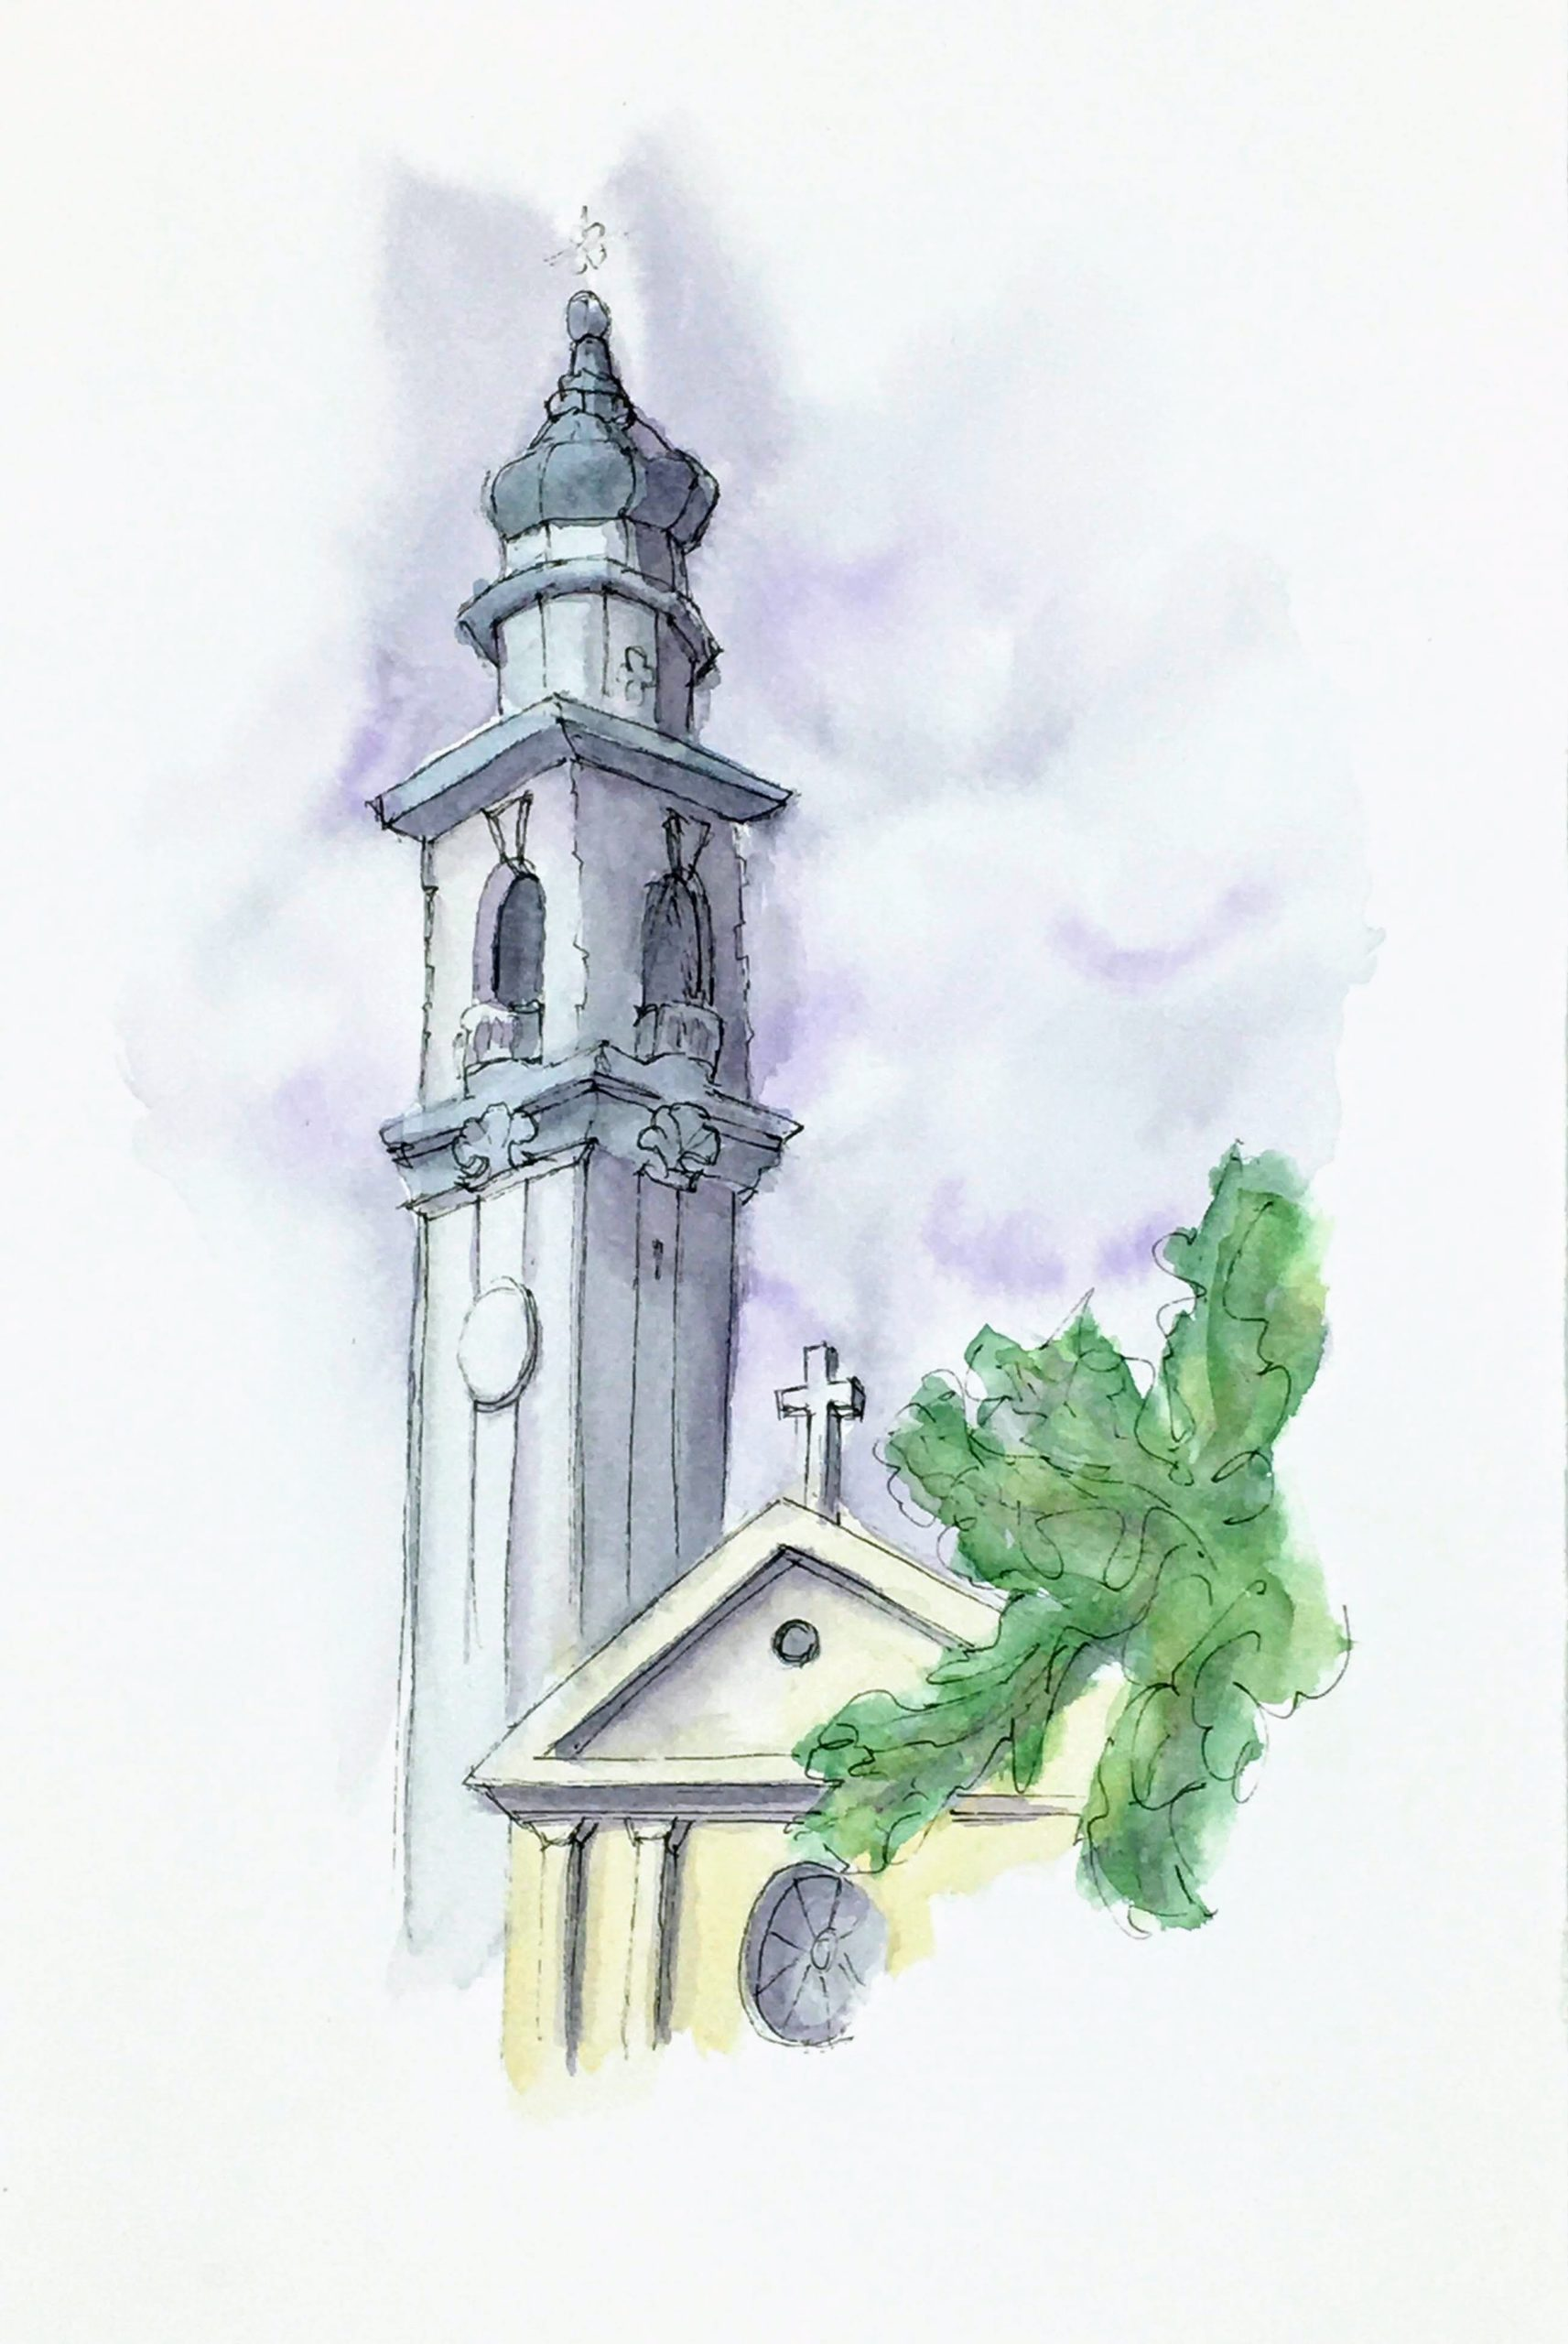 Painting of the The Bell Tower of the Church of Parrocchia